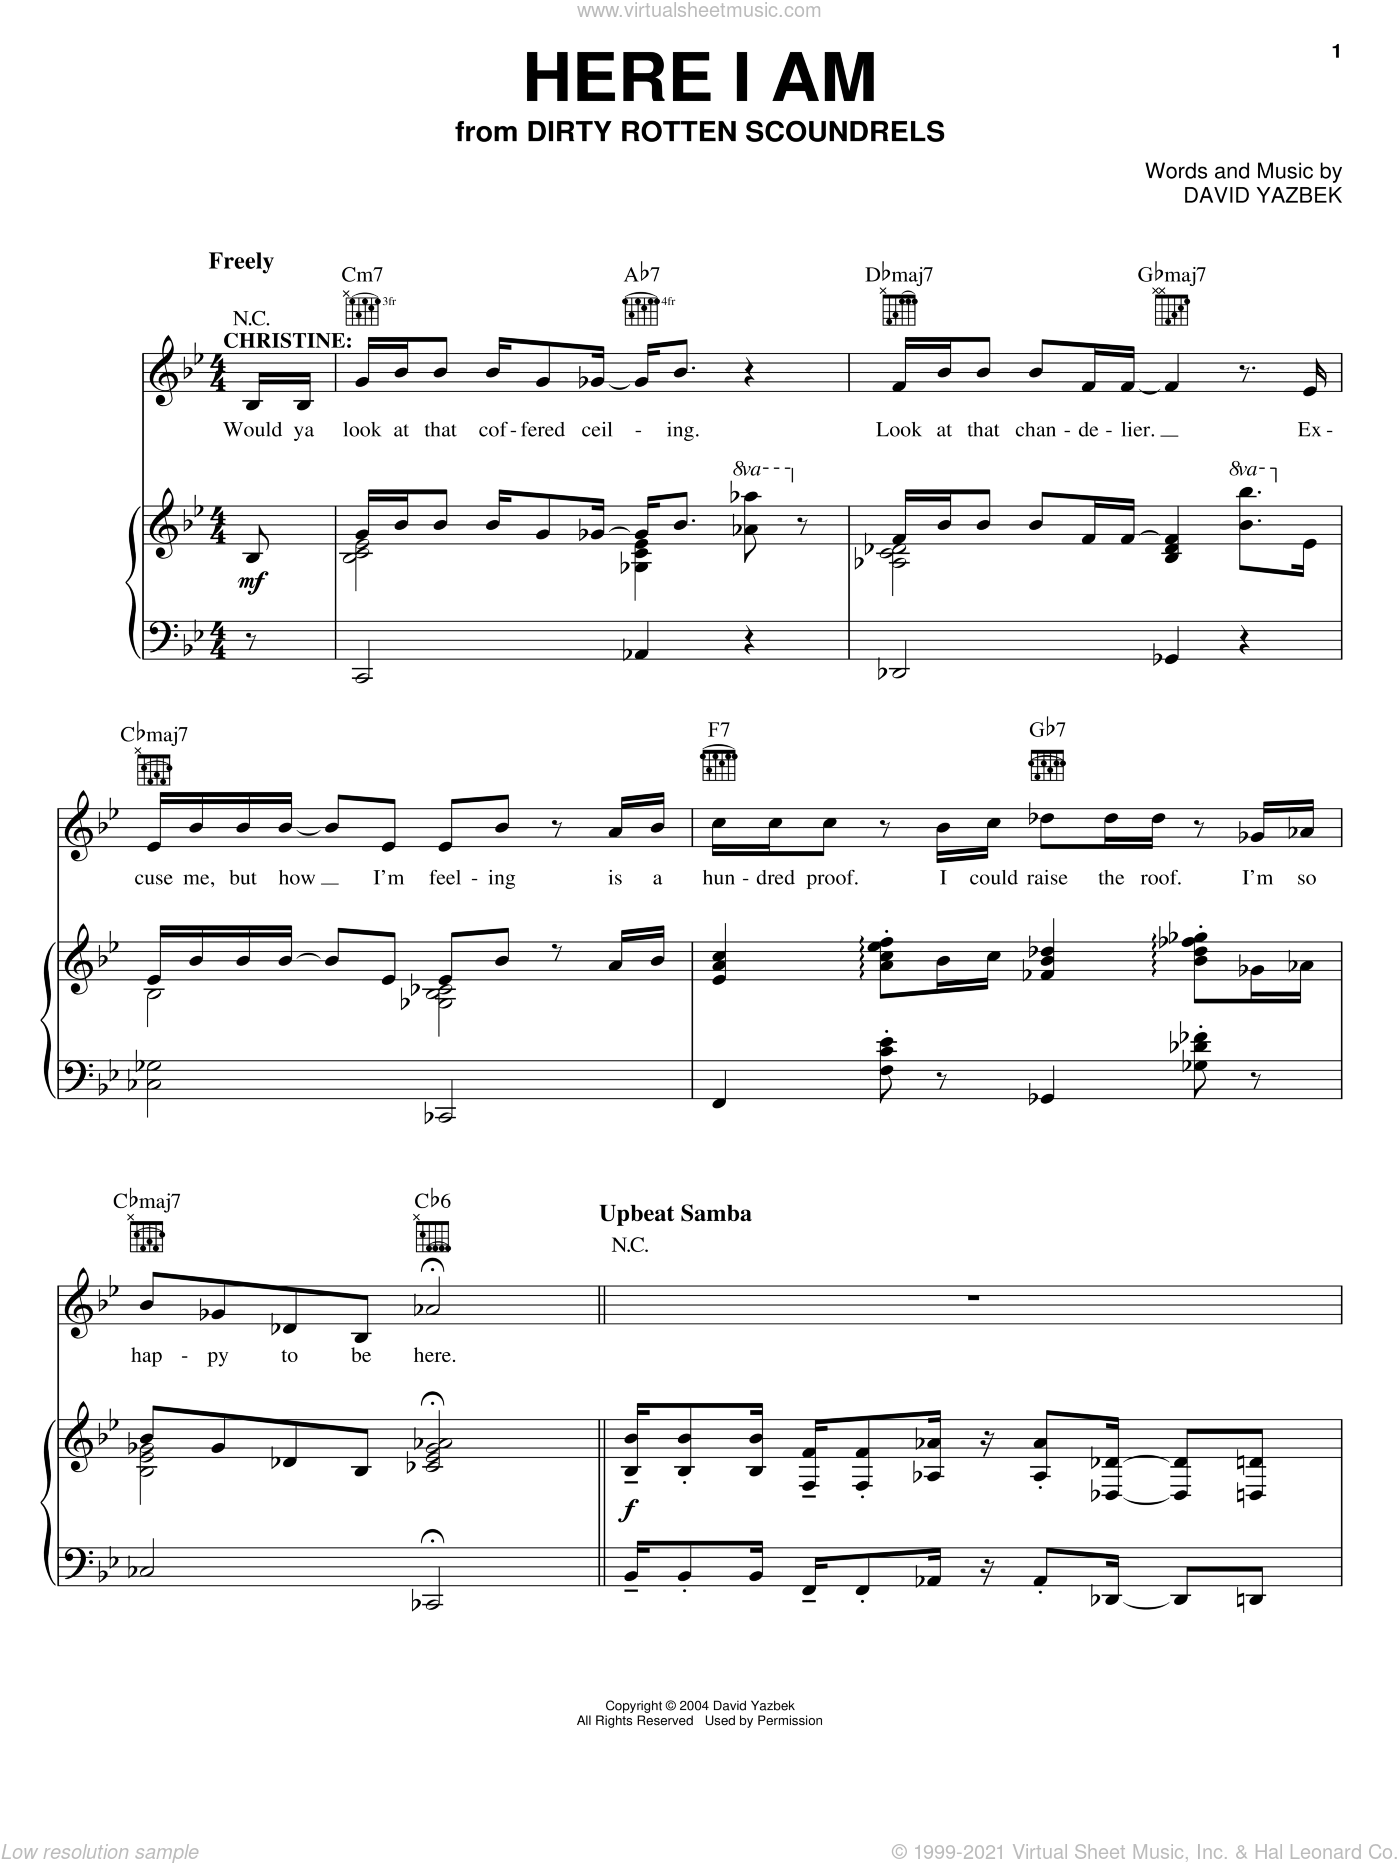 Here I Am sheet music for voice, piano or guitar by David Yazbek and Dirty Rotten Scoundrels (Musical), intermediate skill level